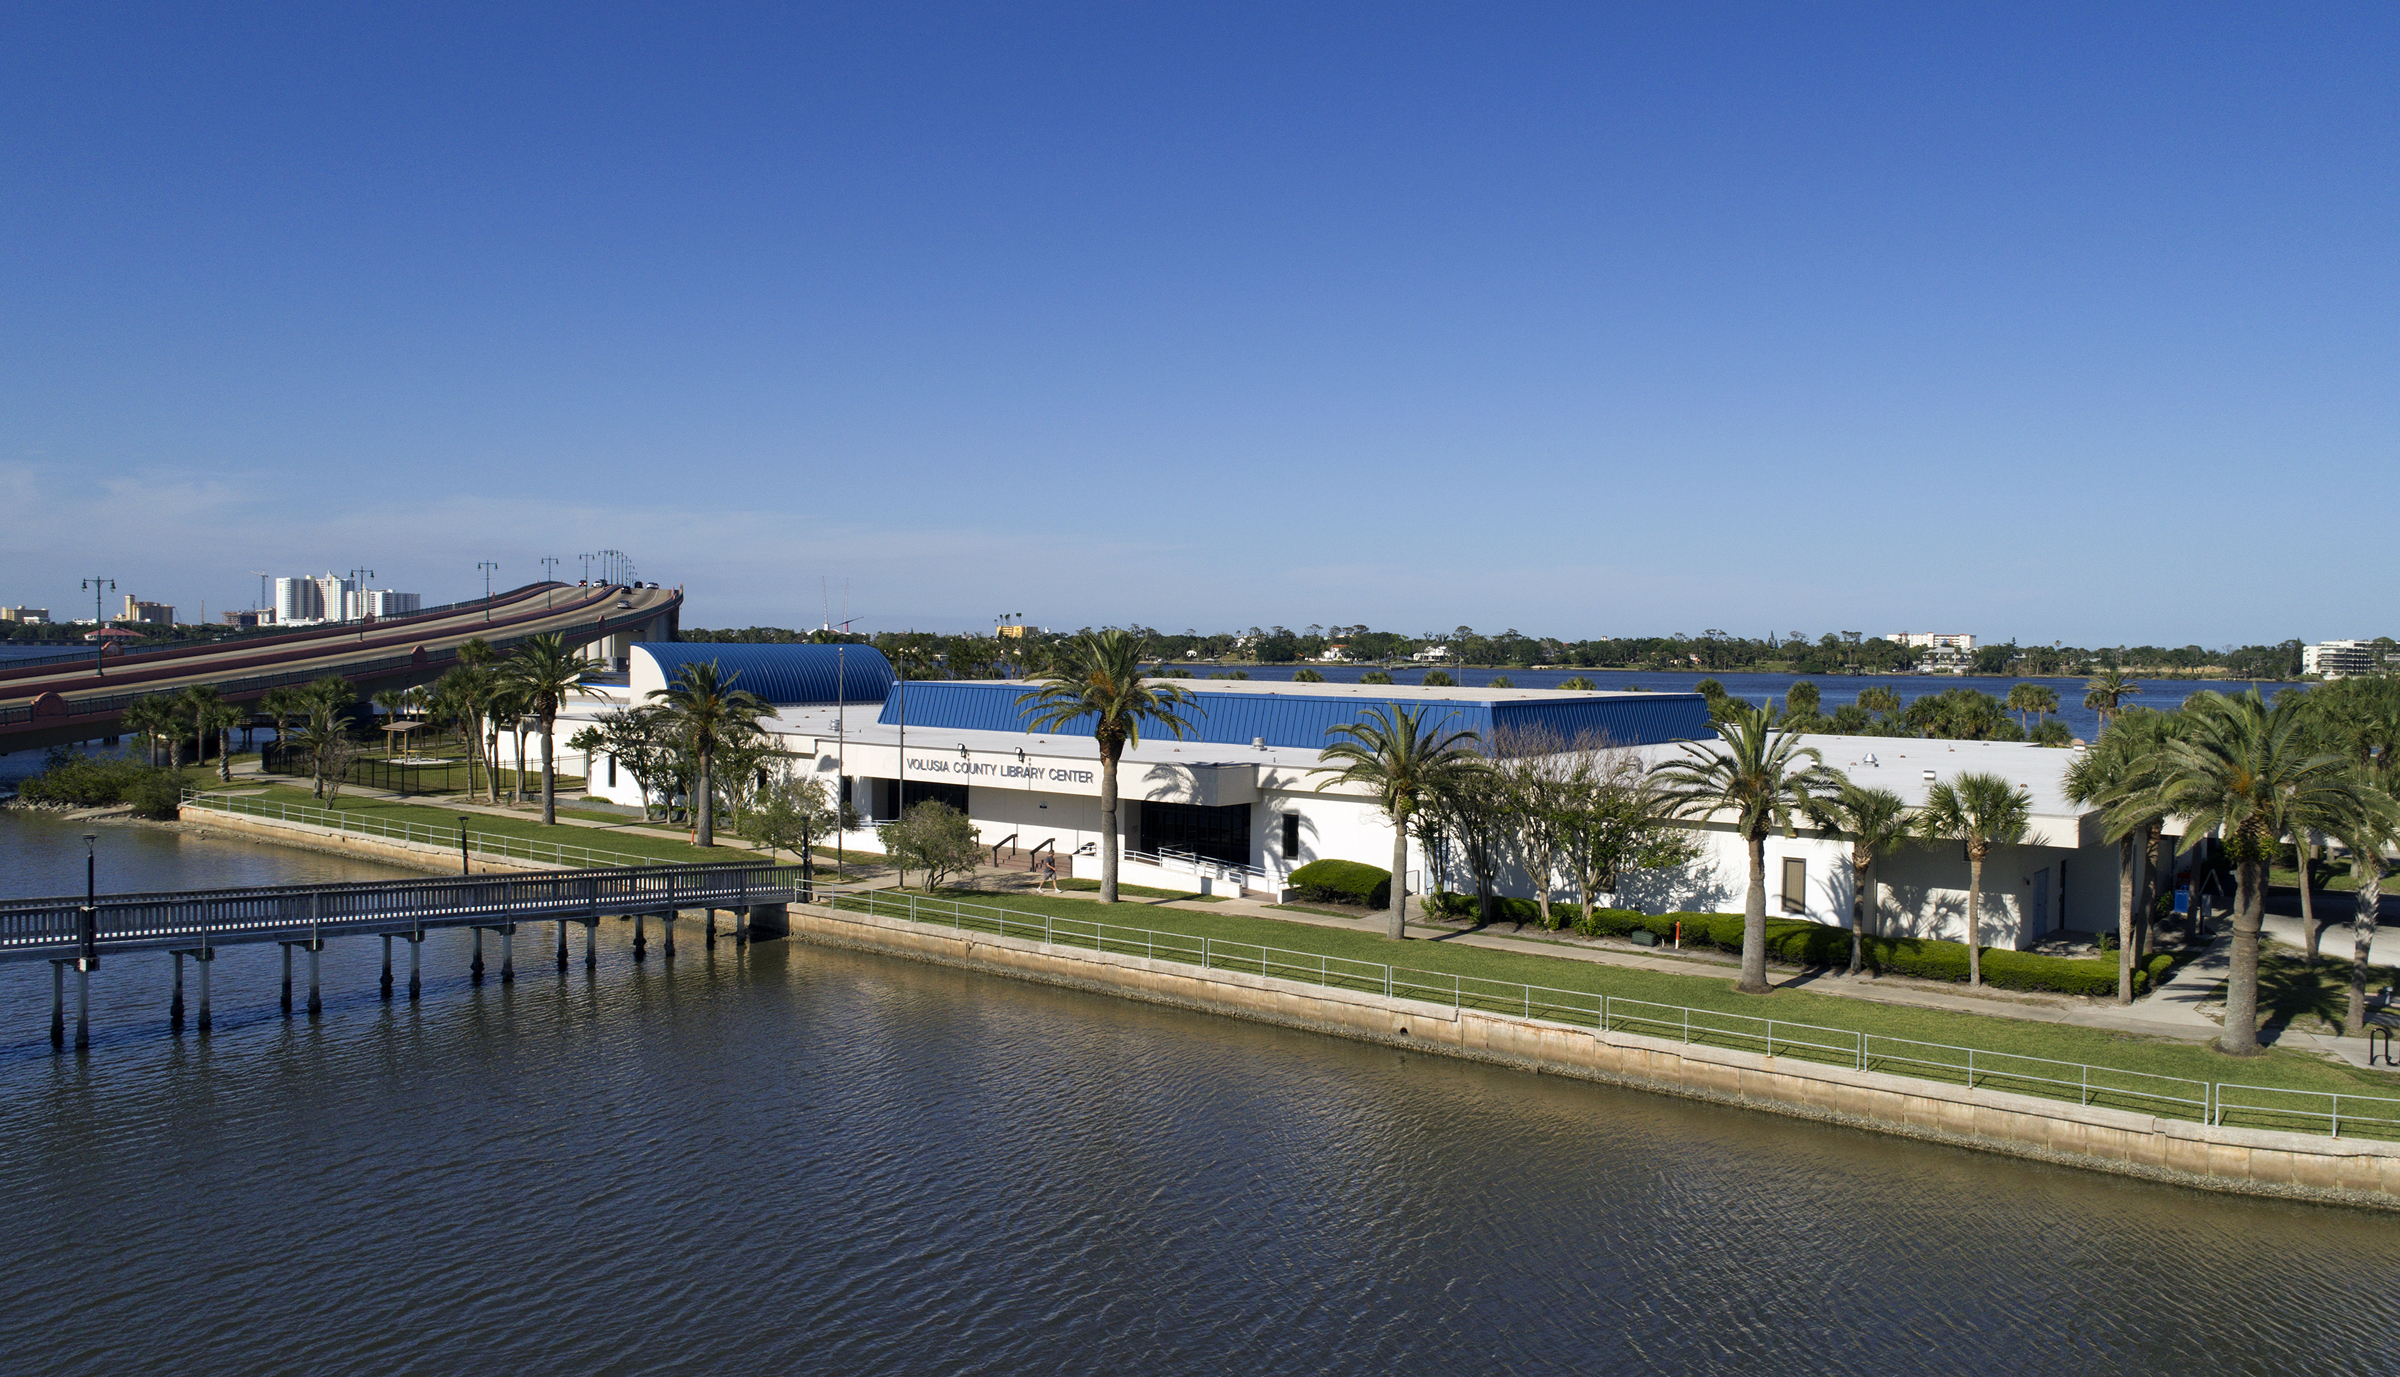 Daytona Beach Regional Library